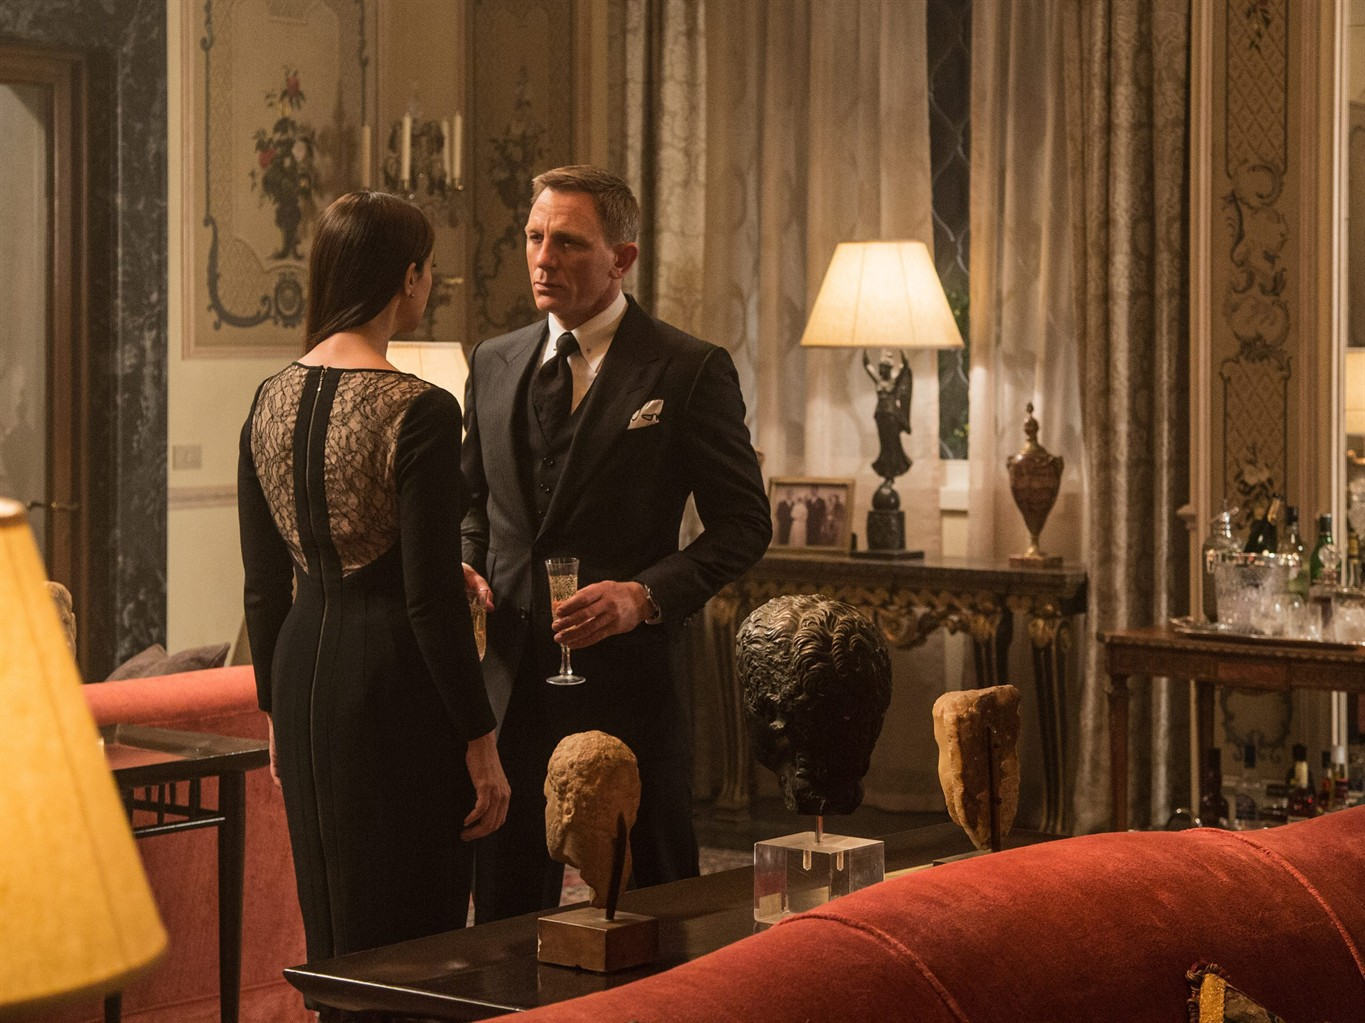 Box Office Top 20: 'Spectre' makes $70 4 million in debut